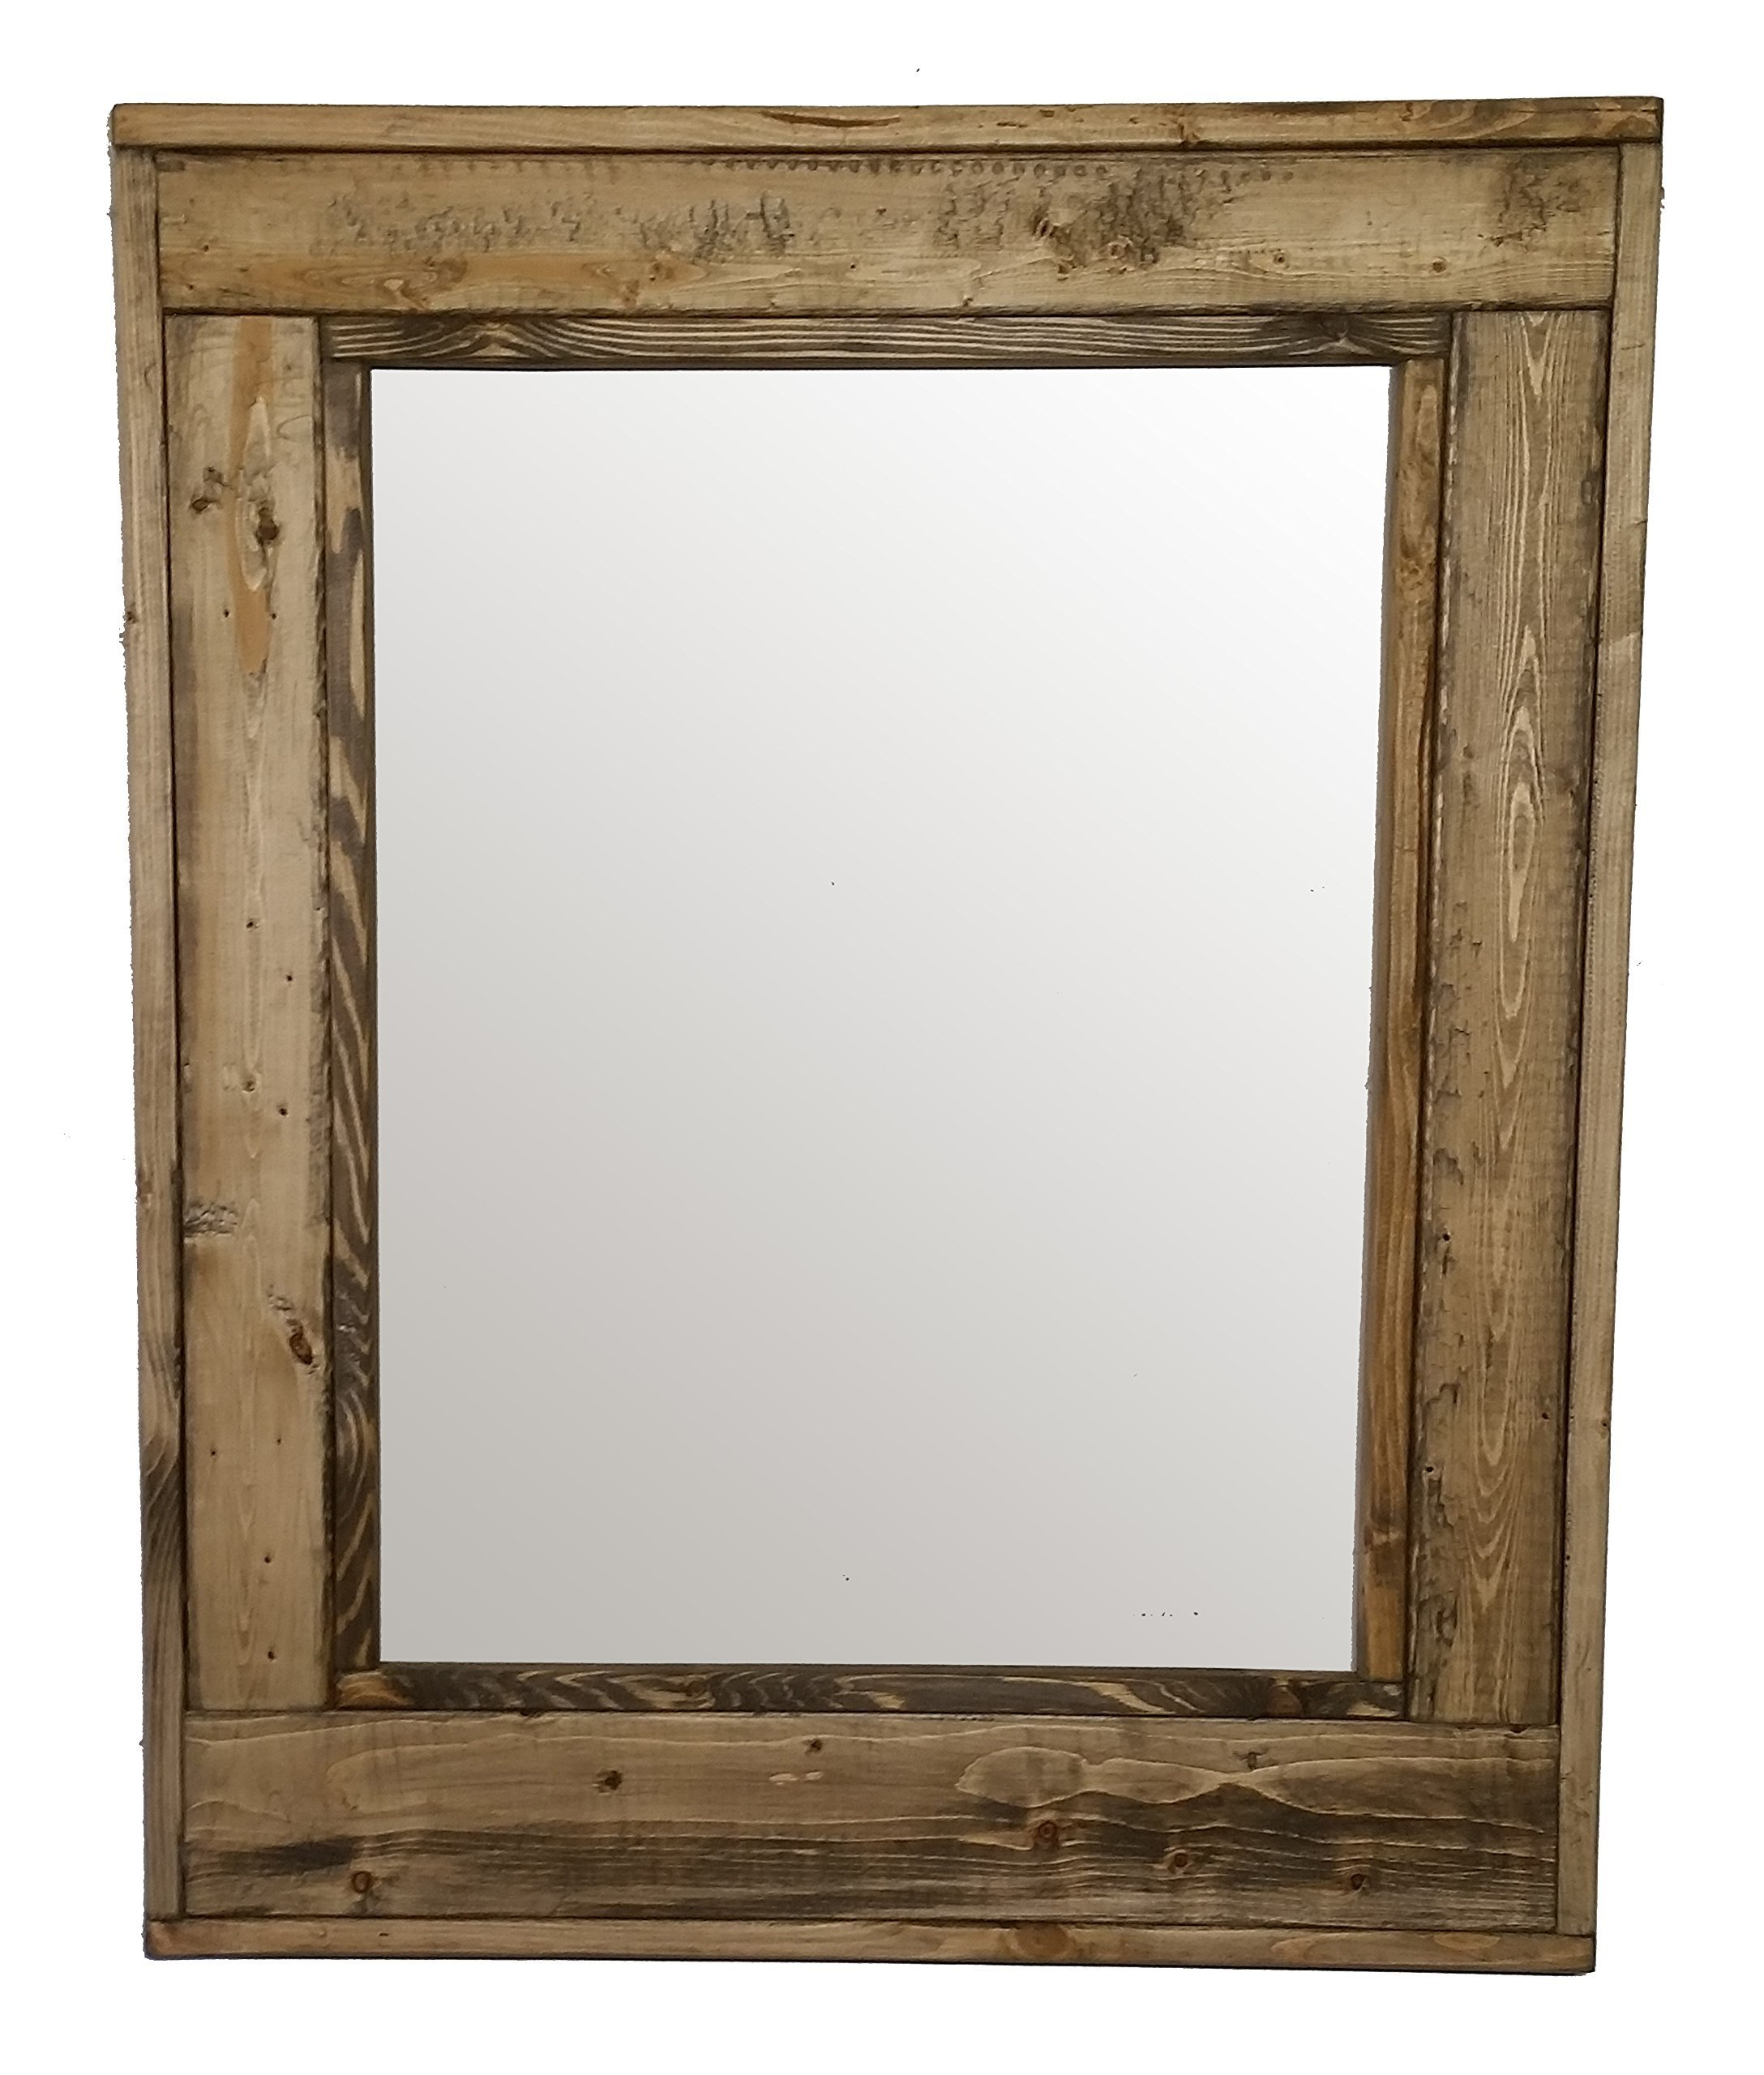 Herringbone 24 x 30 Vertical Framed Mirror Stained in Driftwood - Reclaimed Wood Mirror - Large Wall Mirror - Rustic Modern Home - Home Decor - Mirror - Housewares by Renewed Decor